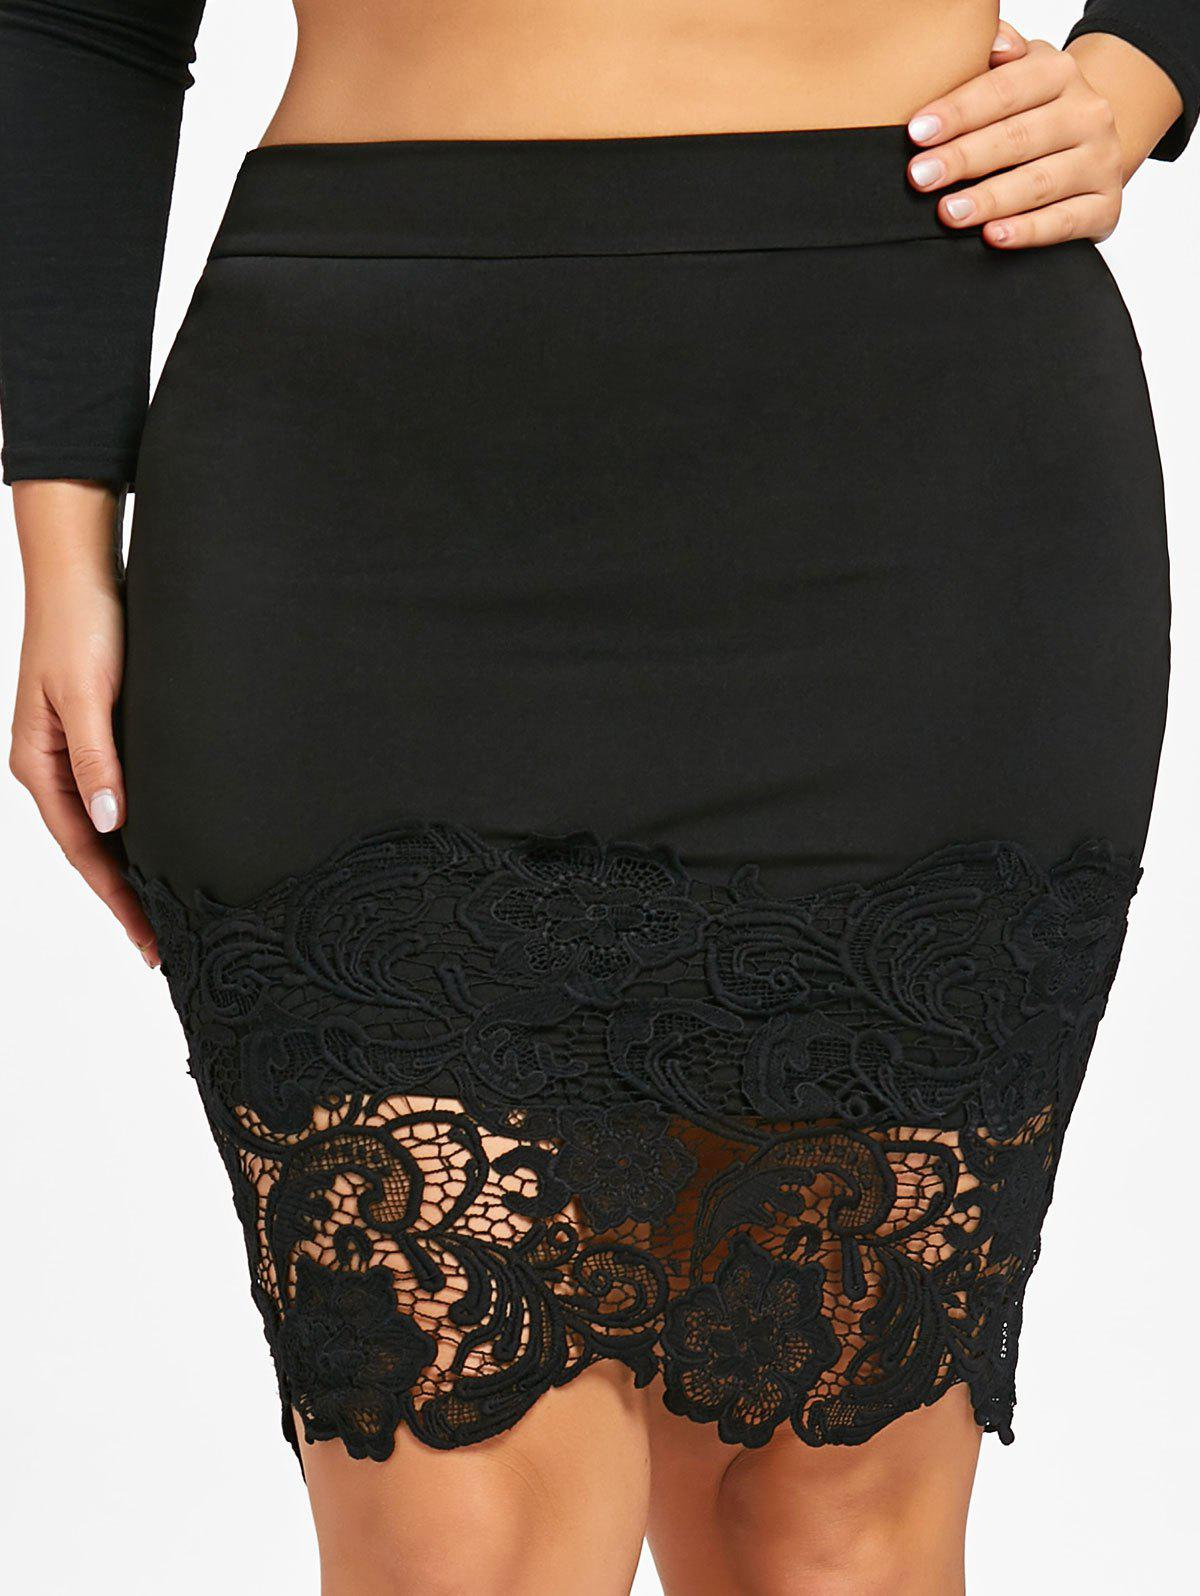 Plus Size Lace Trim Bodycon Skirt - BLACK 2XL